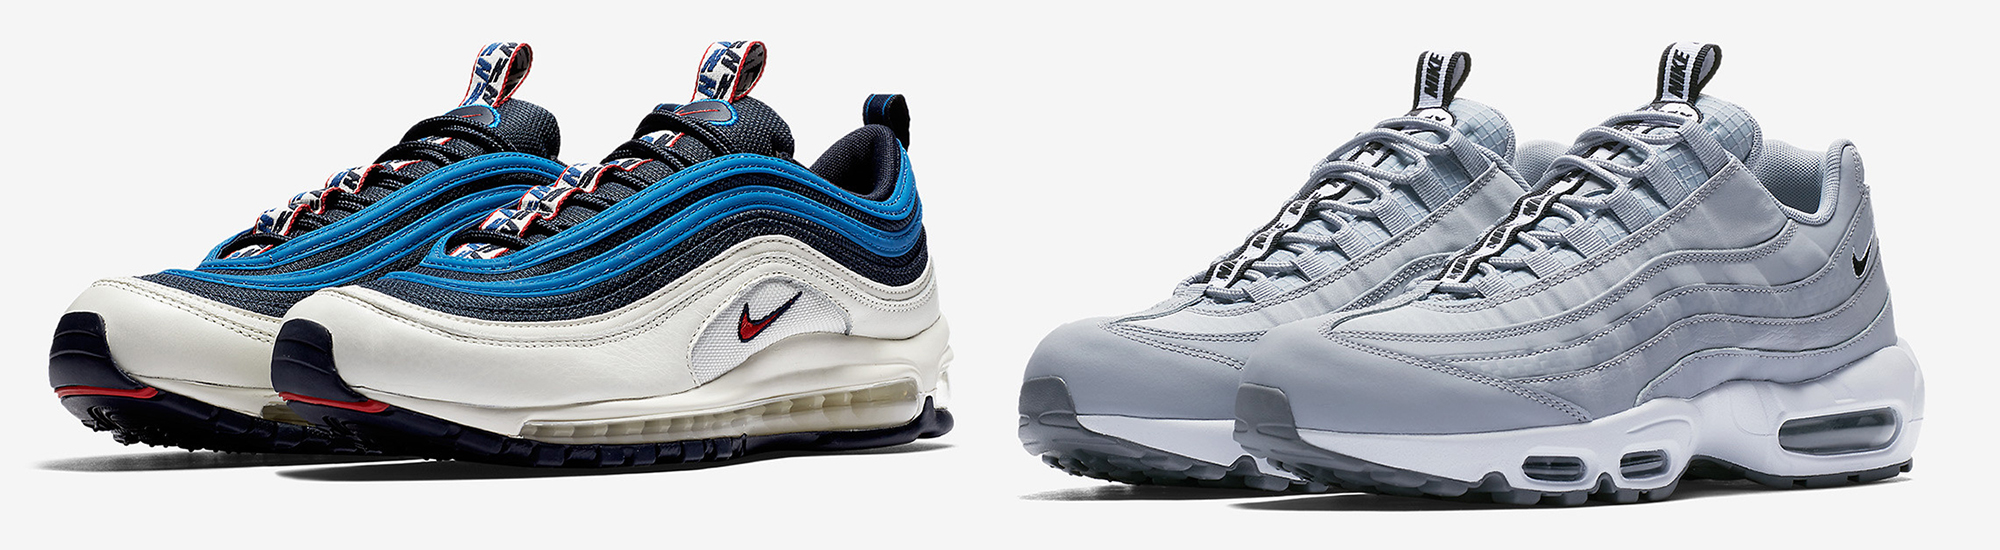 The NIKE AIR MAX PULL TAB PACK returns, this time plastering both the NIKE  AIR MAX 95 and NIKE AIR MAX 97 with the Swooshes logo-dense tape design…